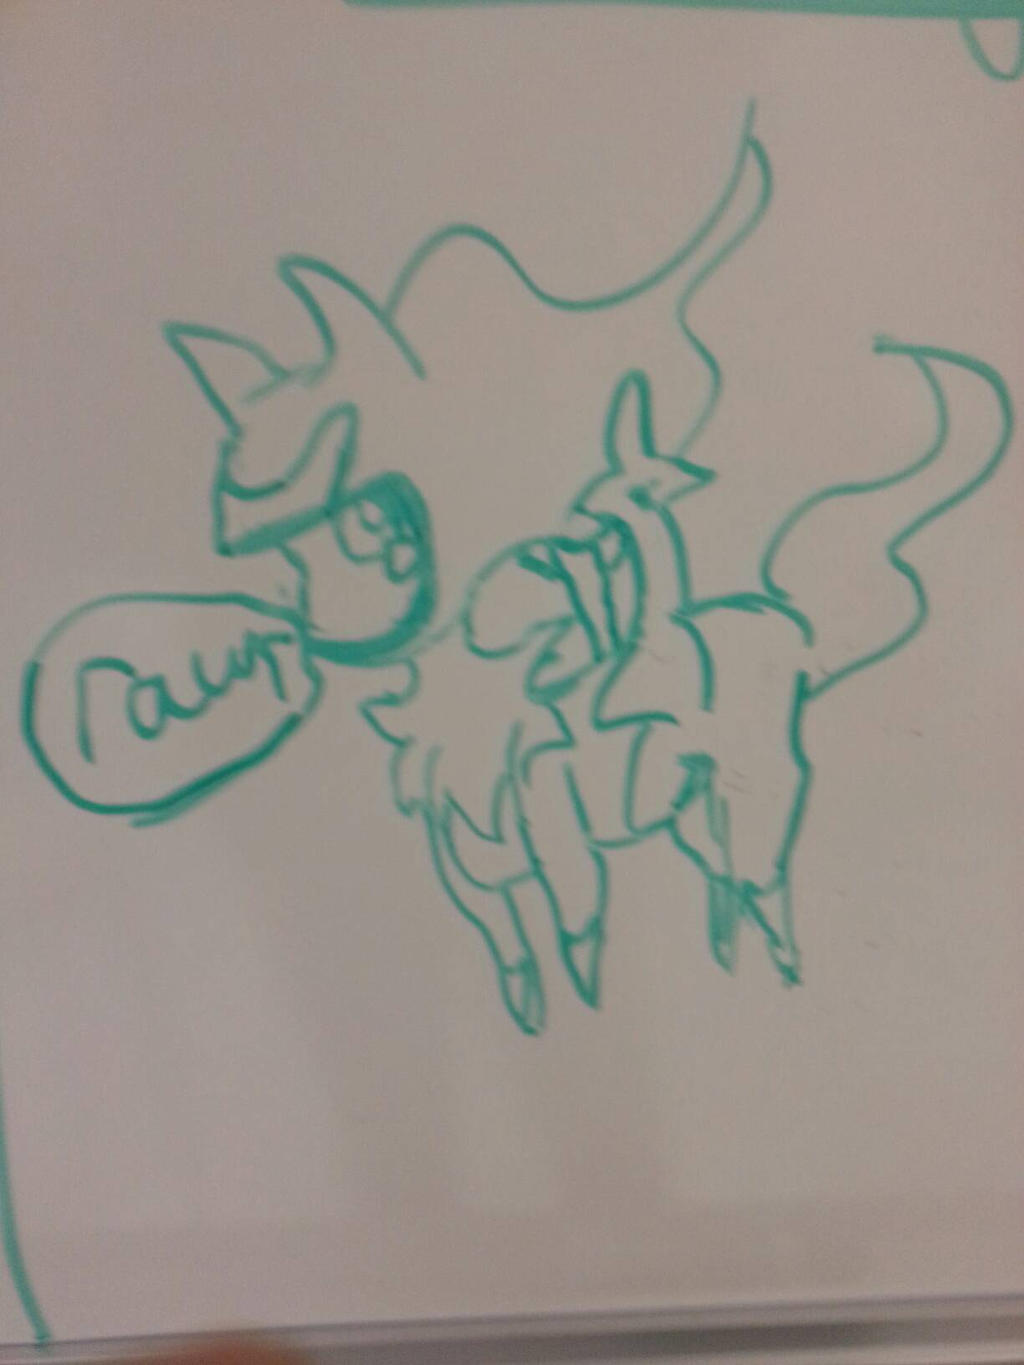 Whiteboard doodle by dragona7x on deviantart for Cute whiteboard drawings